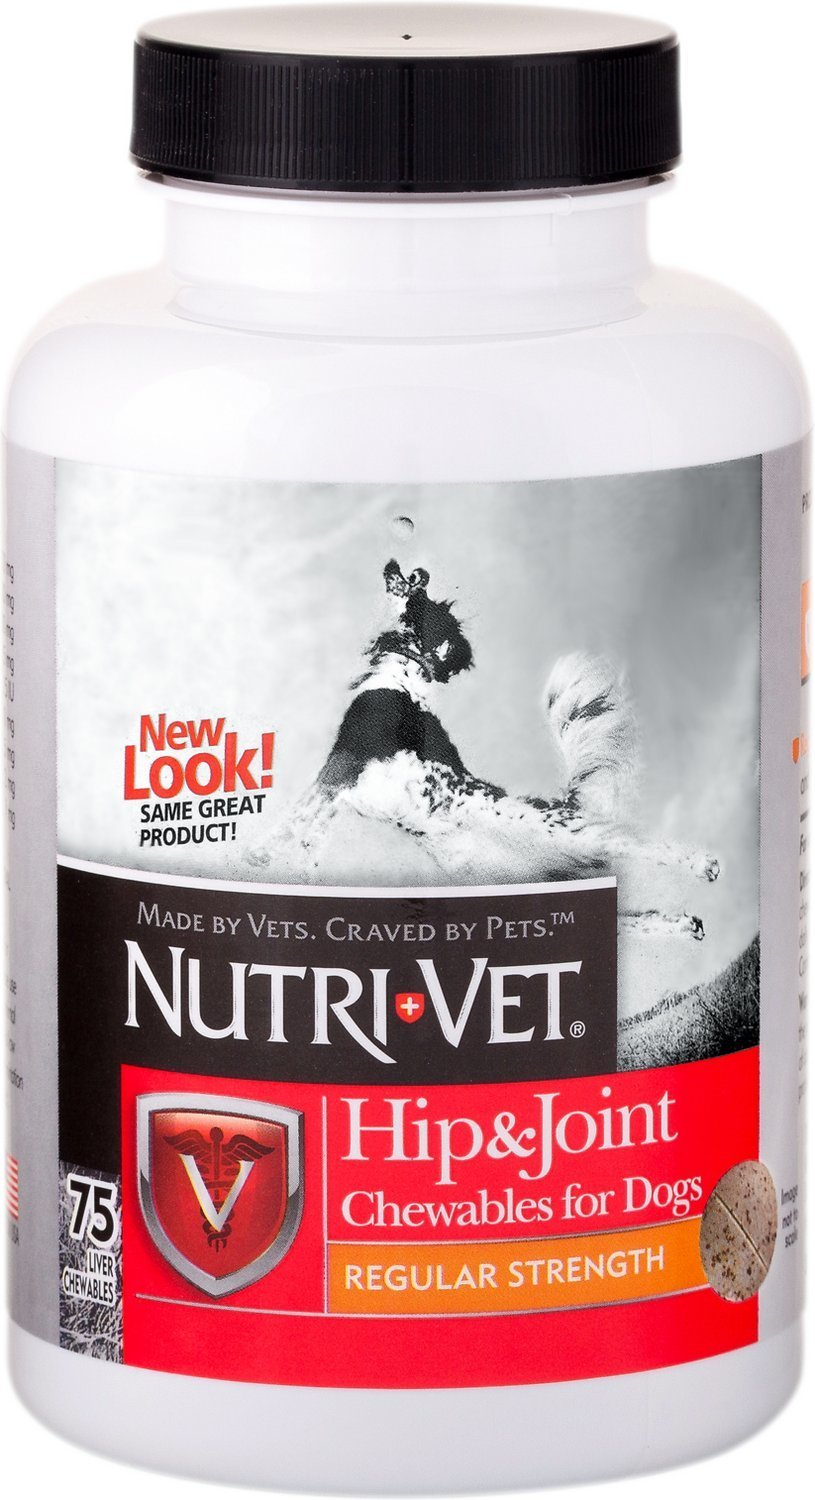 Nutri-Vet Hip & Joint Chewables For Dogs Qty.75 51271